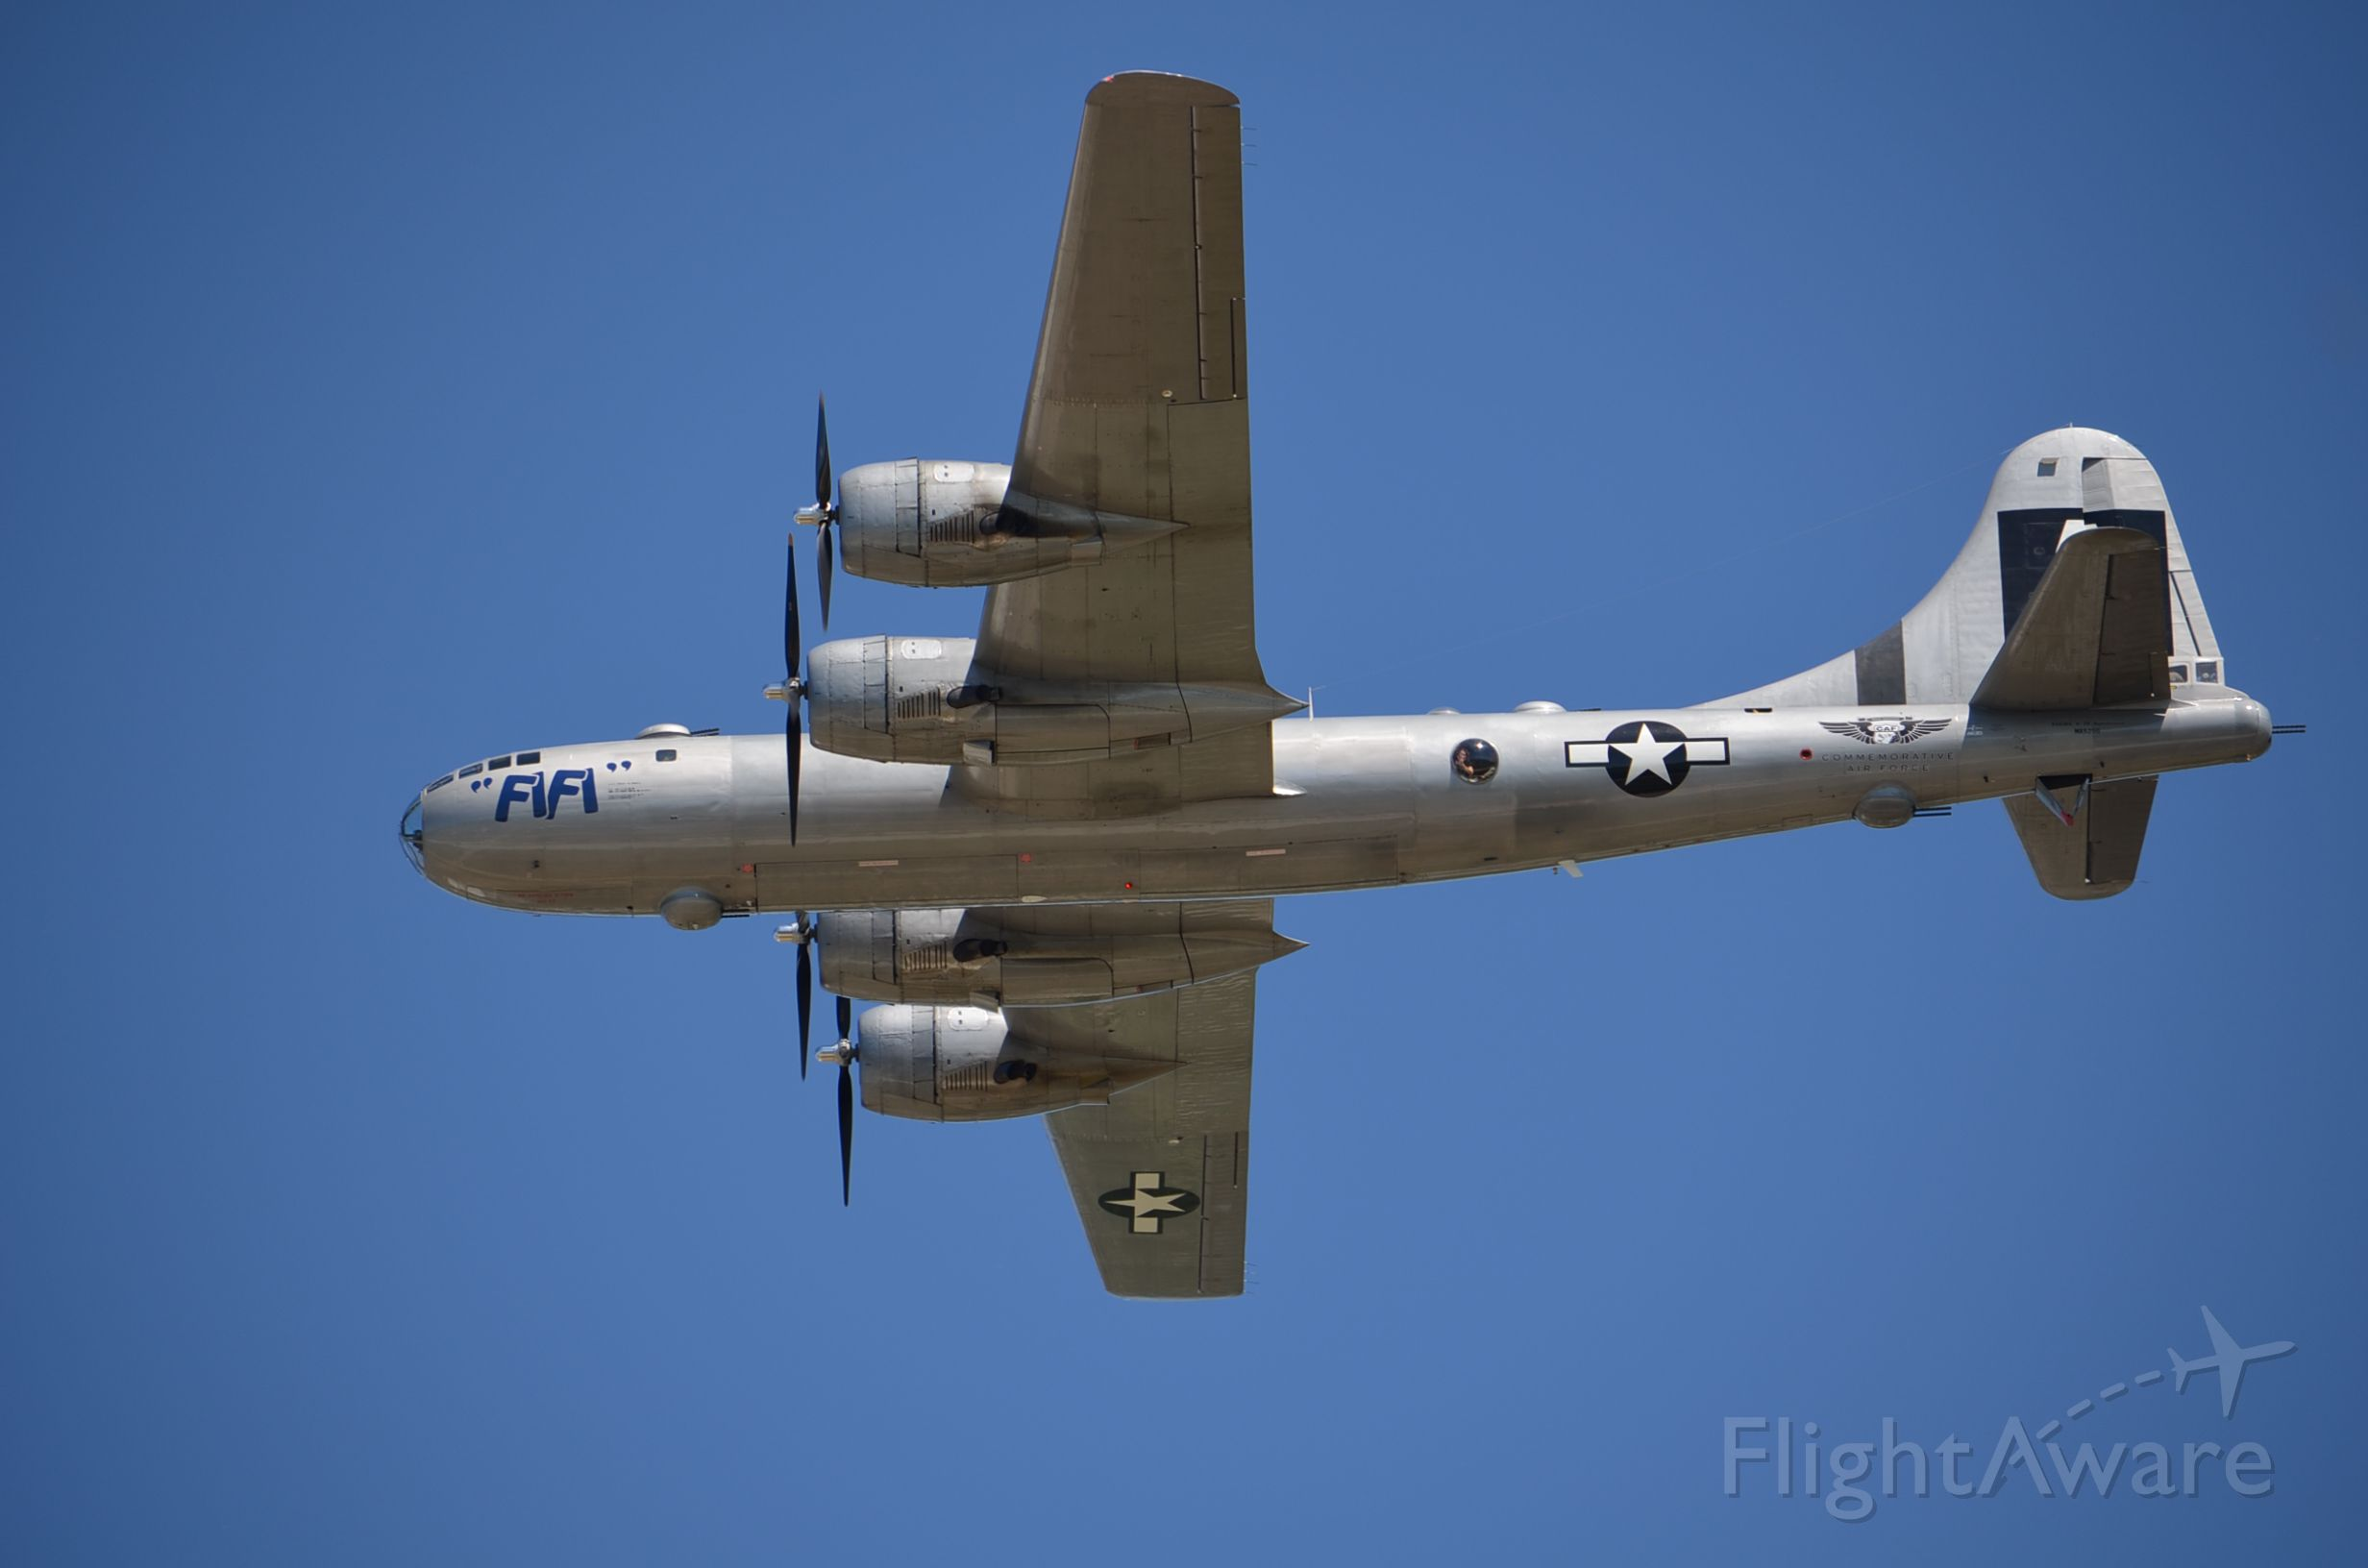 Boeing B-29 Superfortress (NX529B) - EAA 2011 B-29 Fifi. Almost framed her perfectly but was lazy and did not bring the tripod. Tsk, tsk.